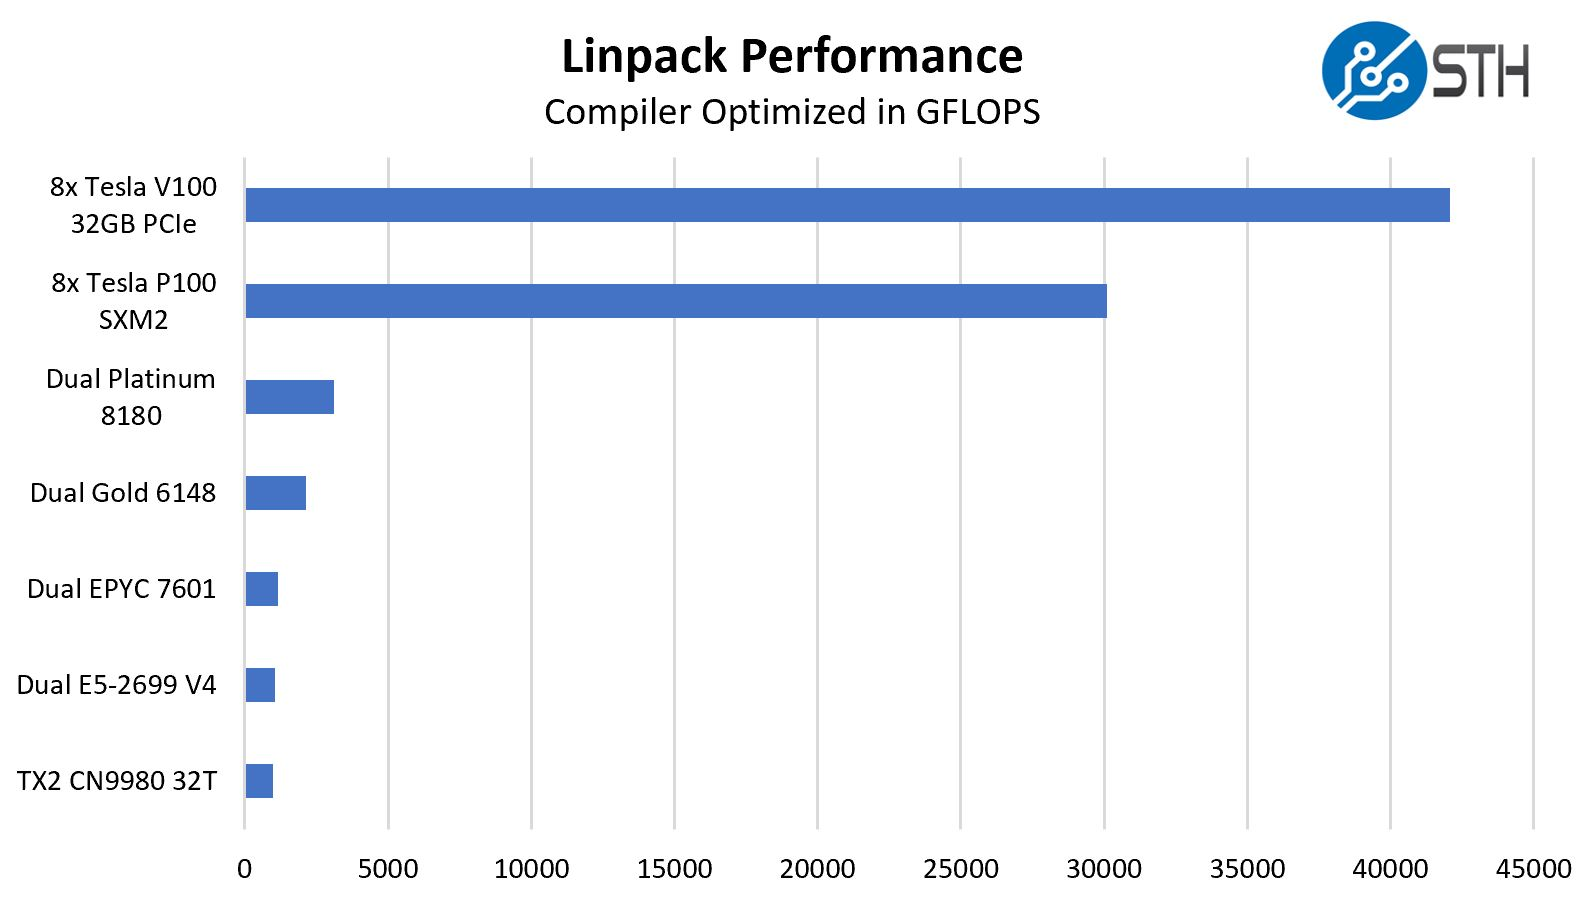 HPL Performance Comparison 8x Tesla V100 32GB PCIe And CPUs